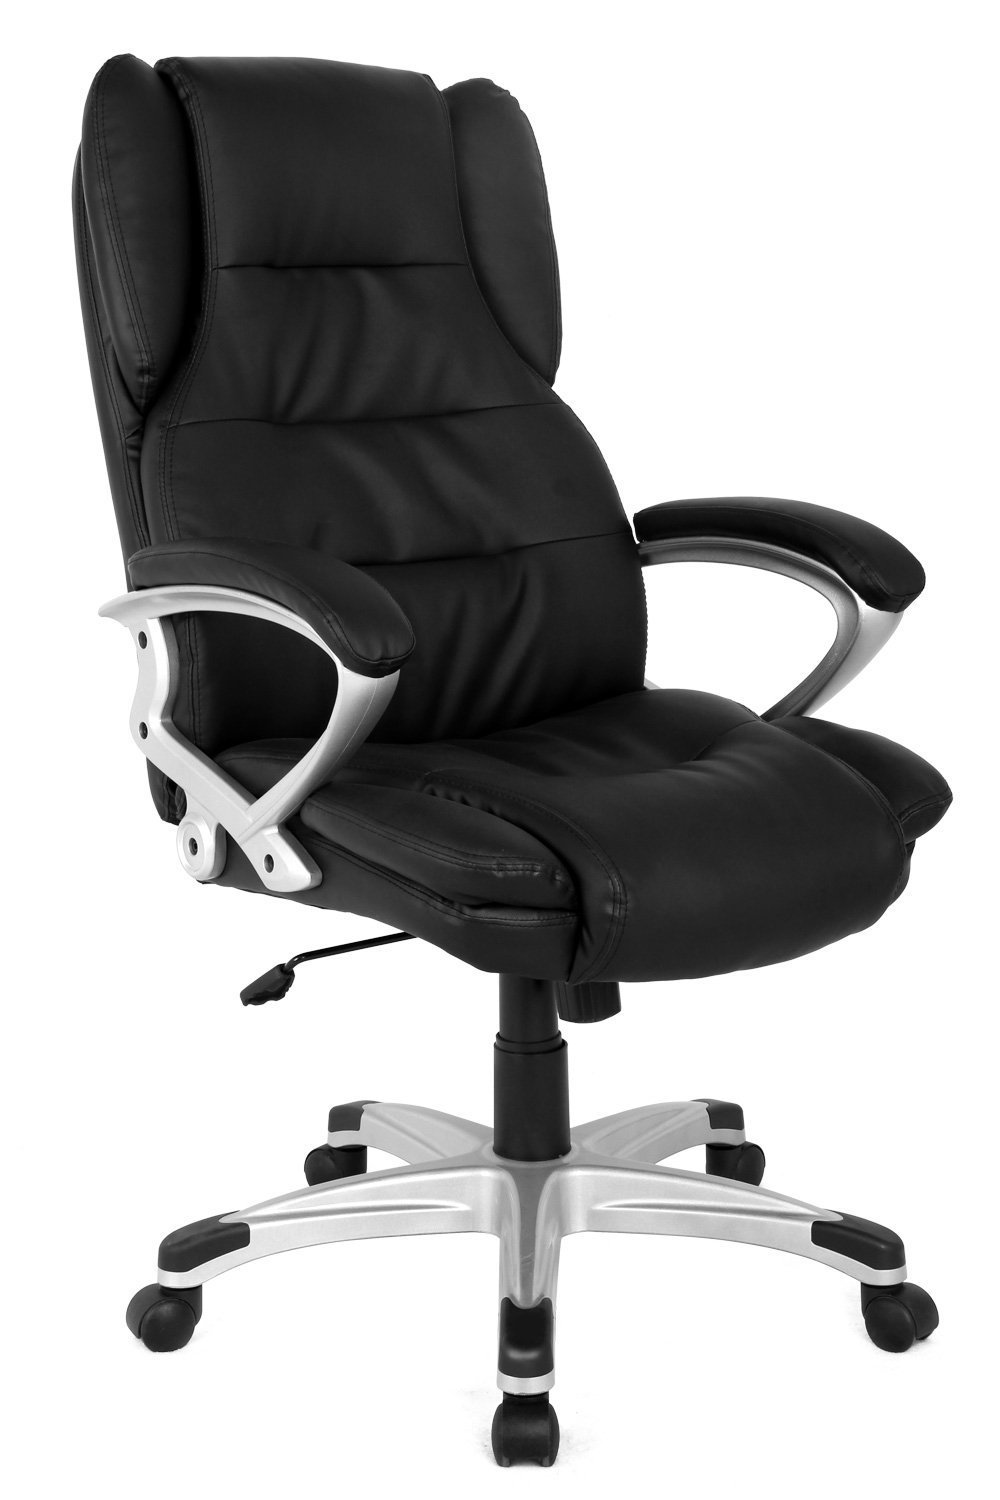 Modern Gaming Office Computer Chair Home Furniture Design